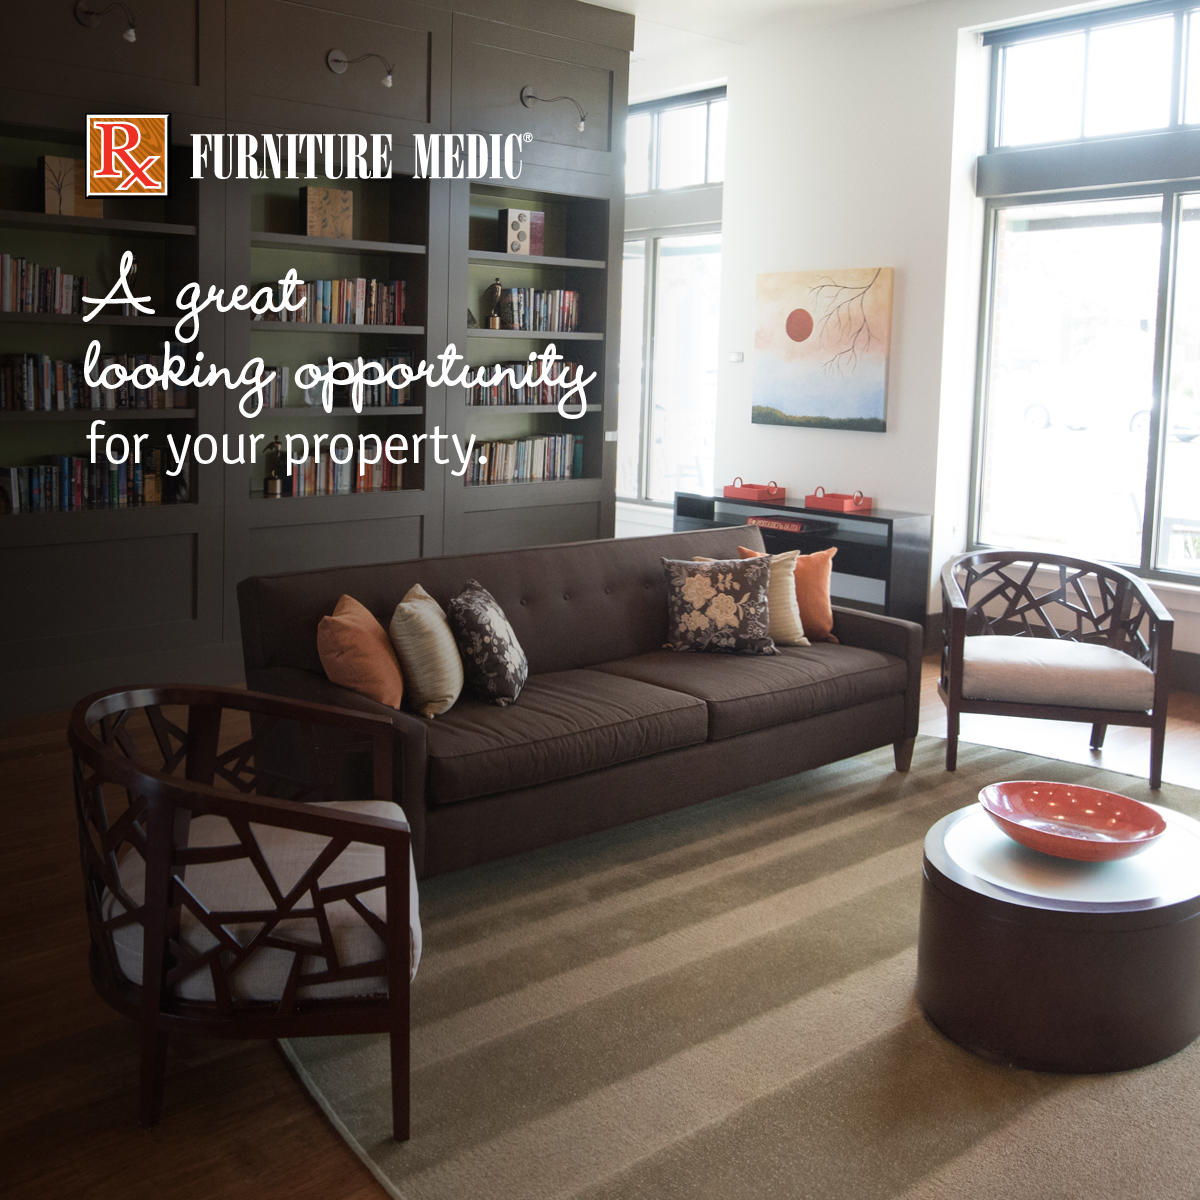 Furniture Medic By VaHill Restore And Cabinets 1325 Whitlock Lane Suite 205  Carrollton, TX Furniture Repairing U0026 Refinishing   MapQuest